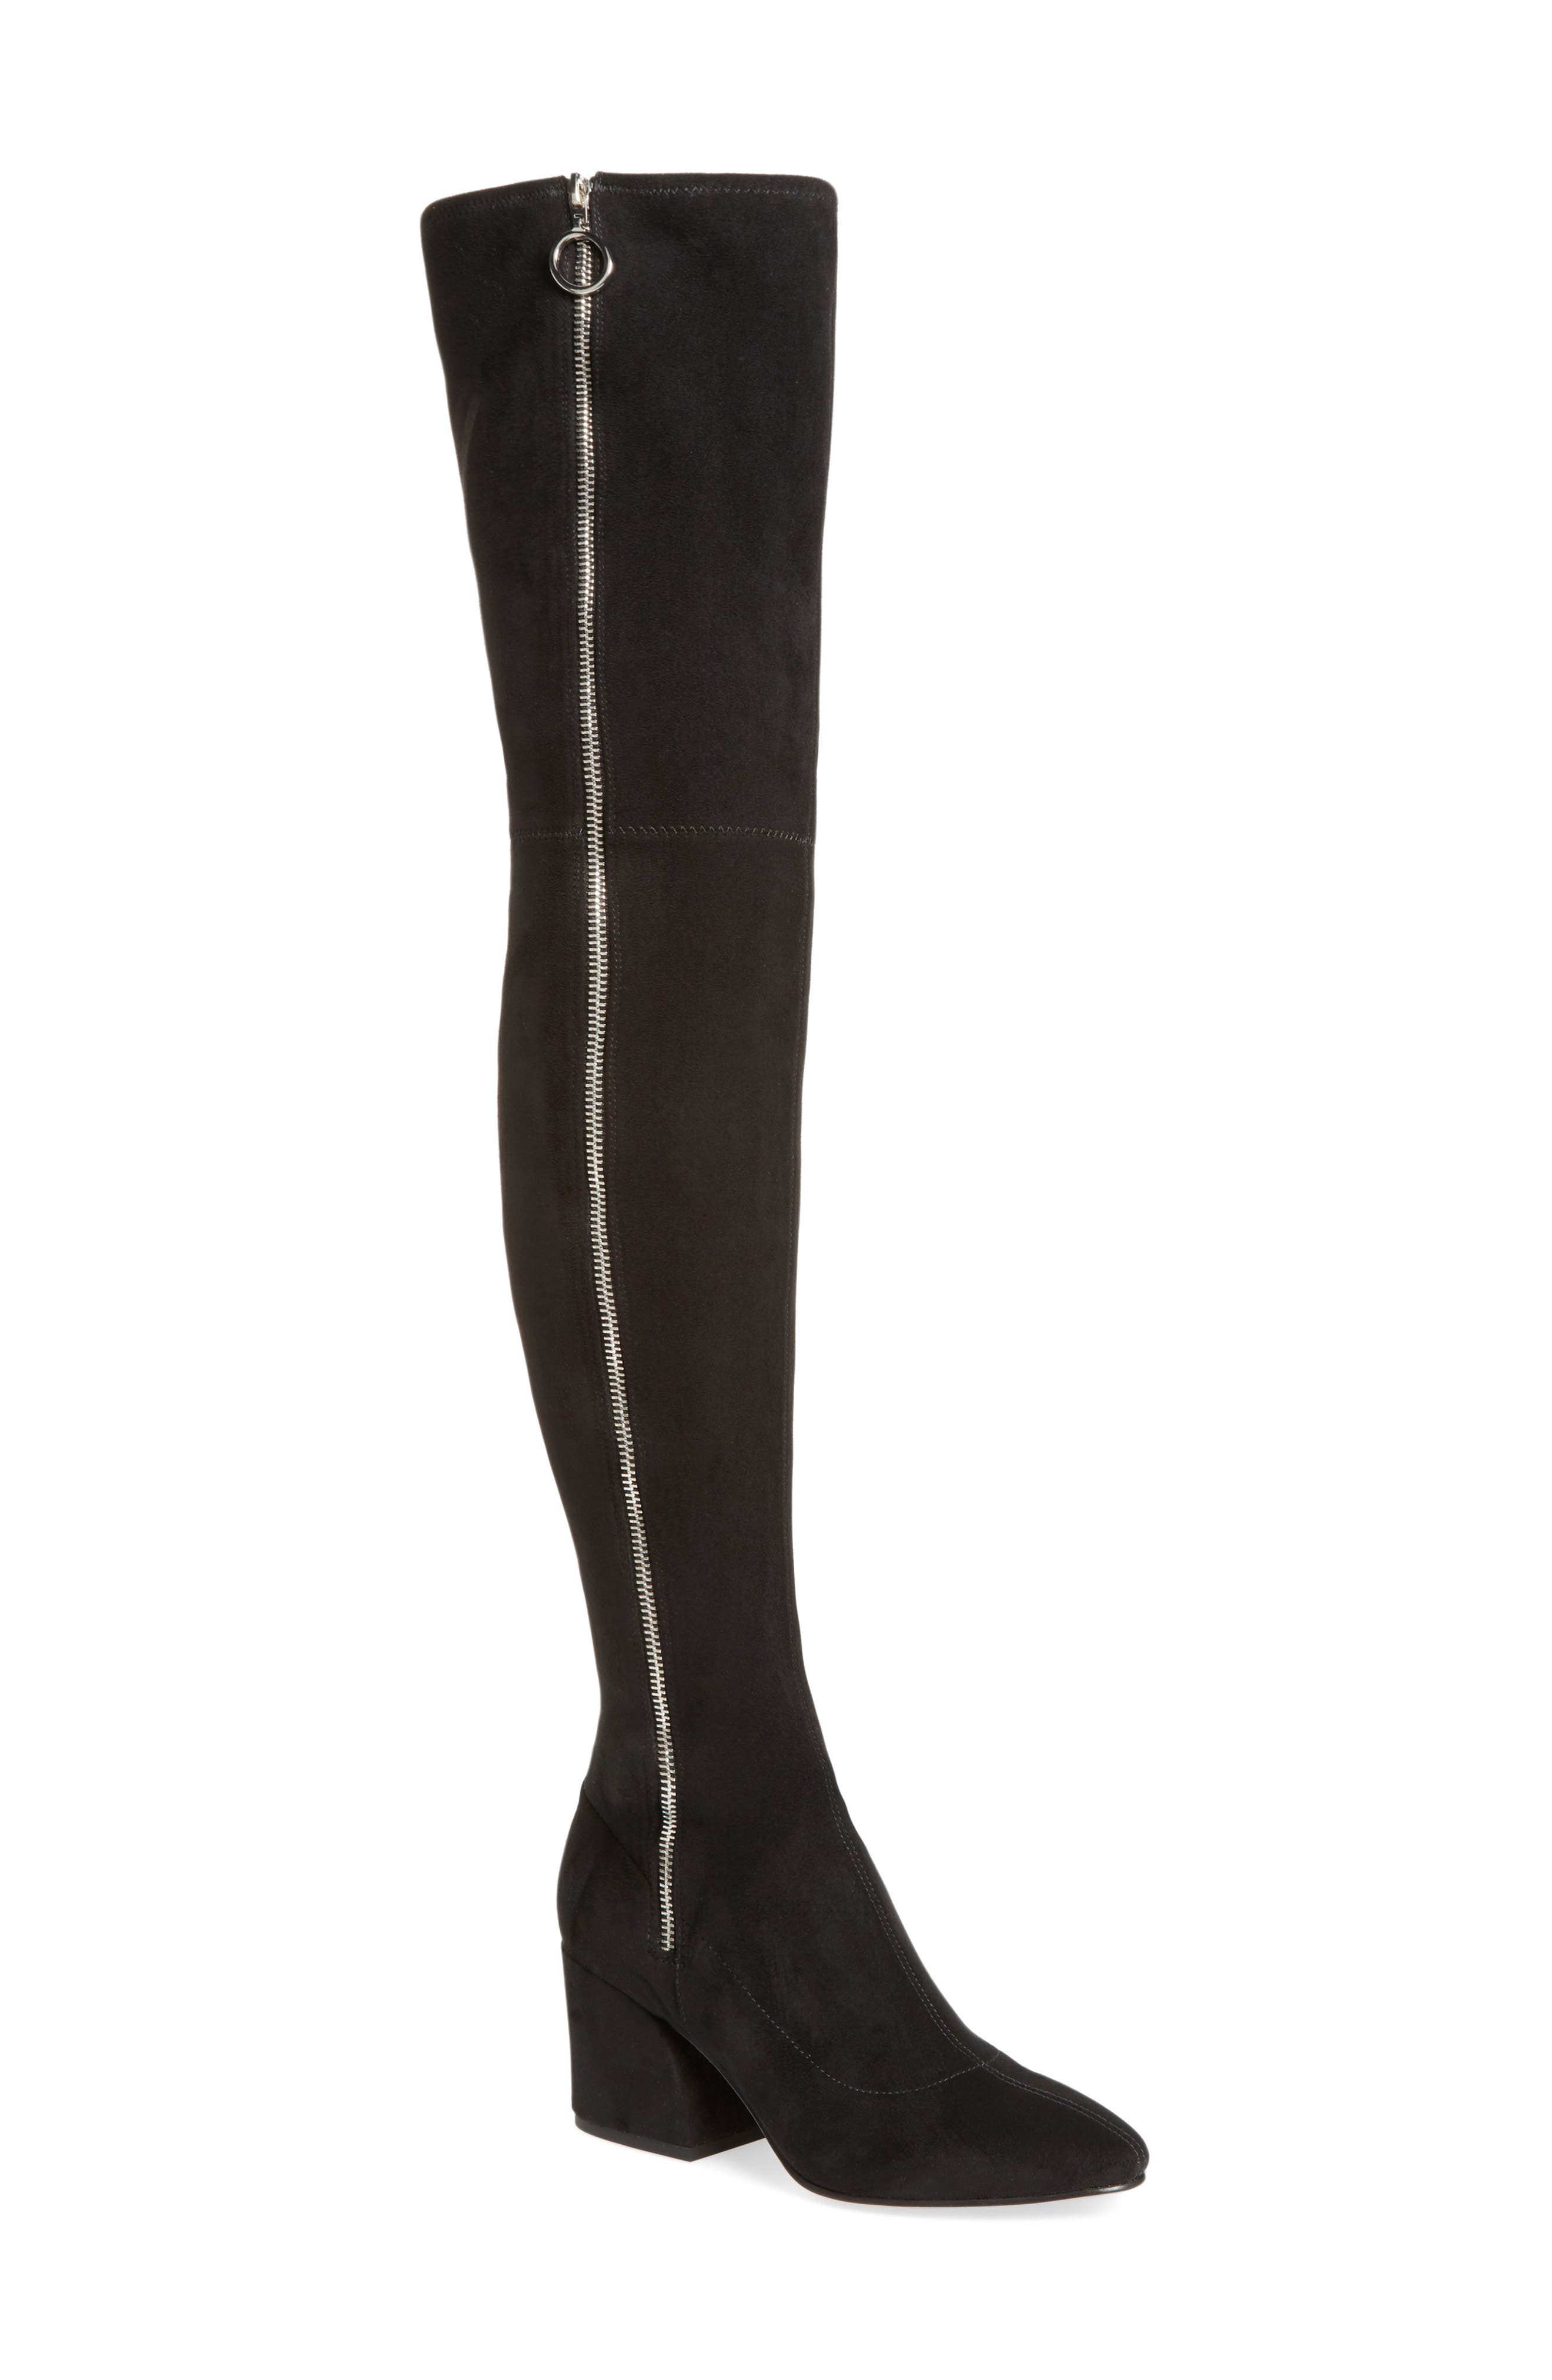 Vix Thigh High Boot,                         Main,                         color, Black Suede